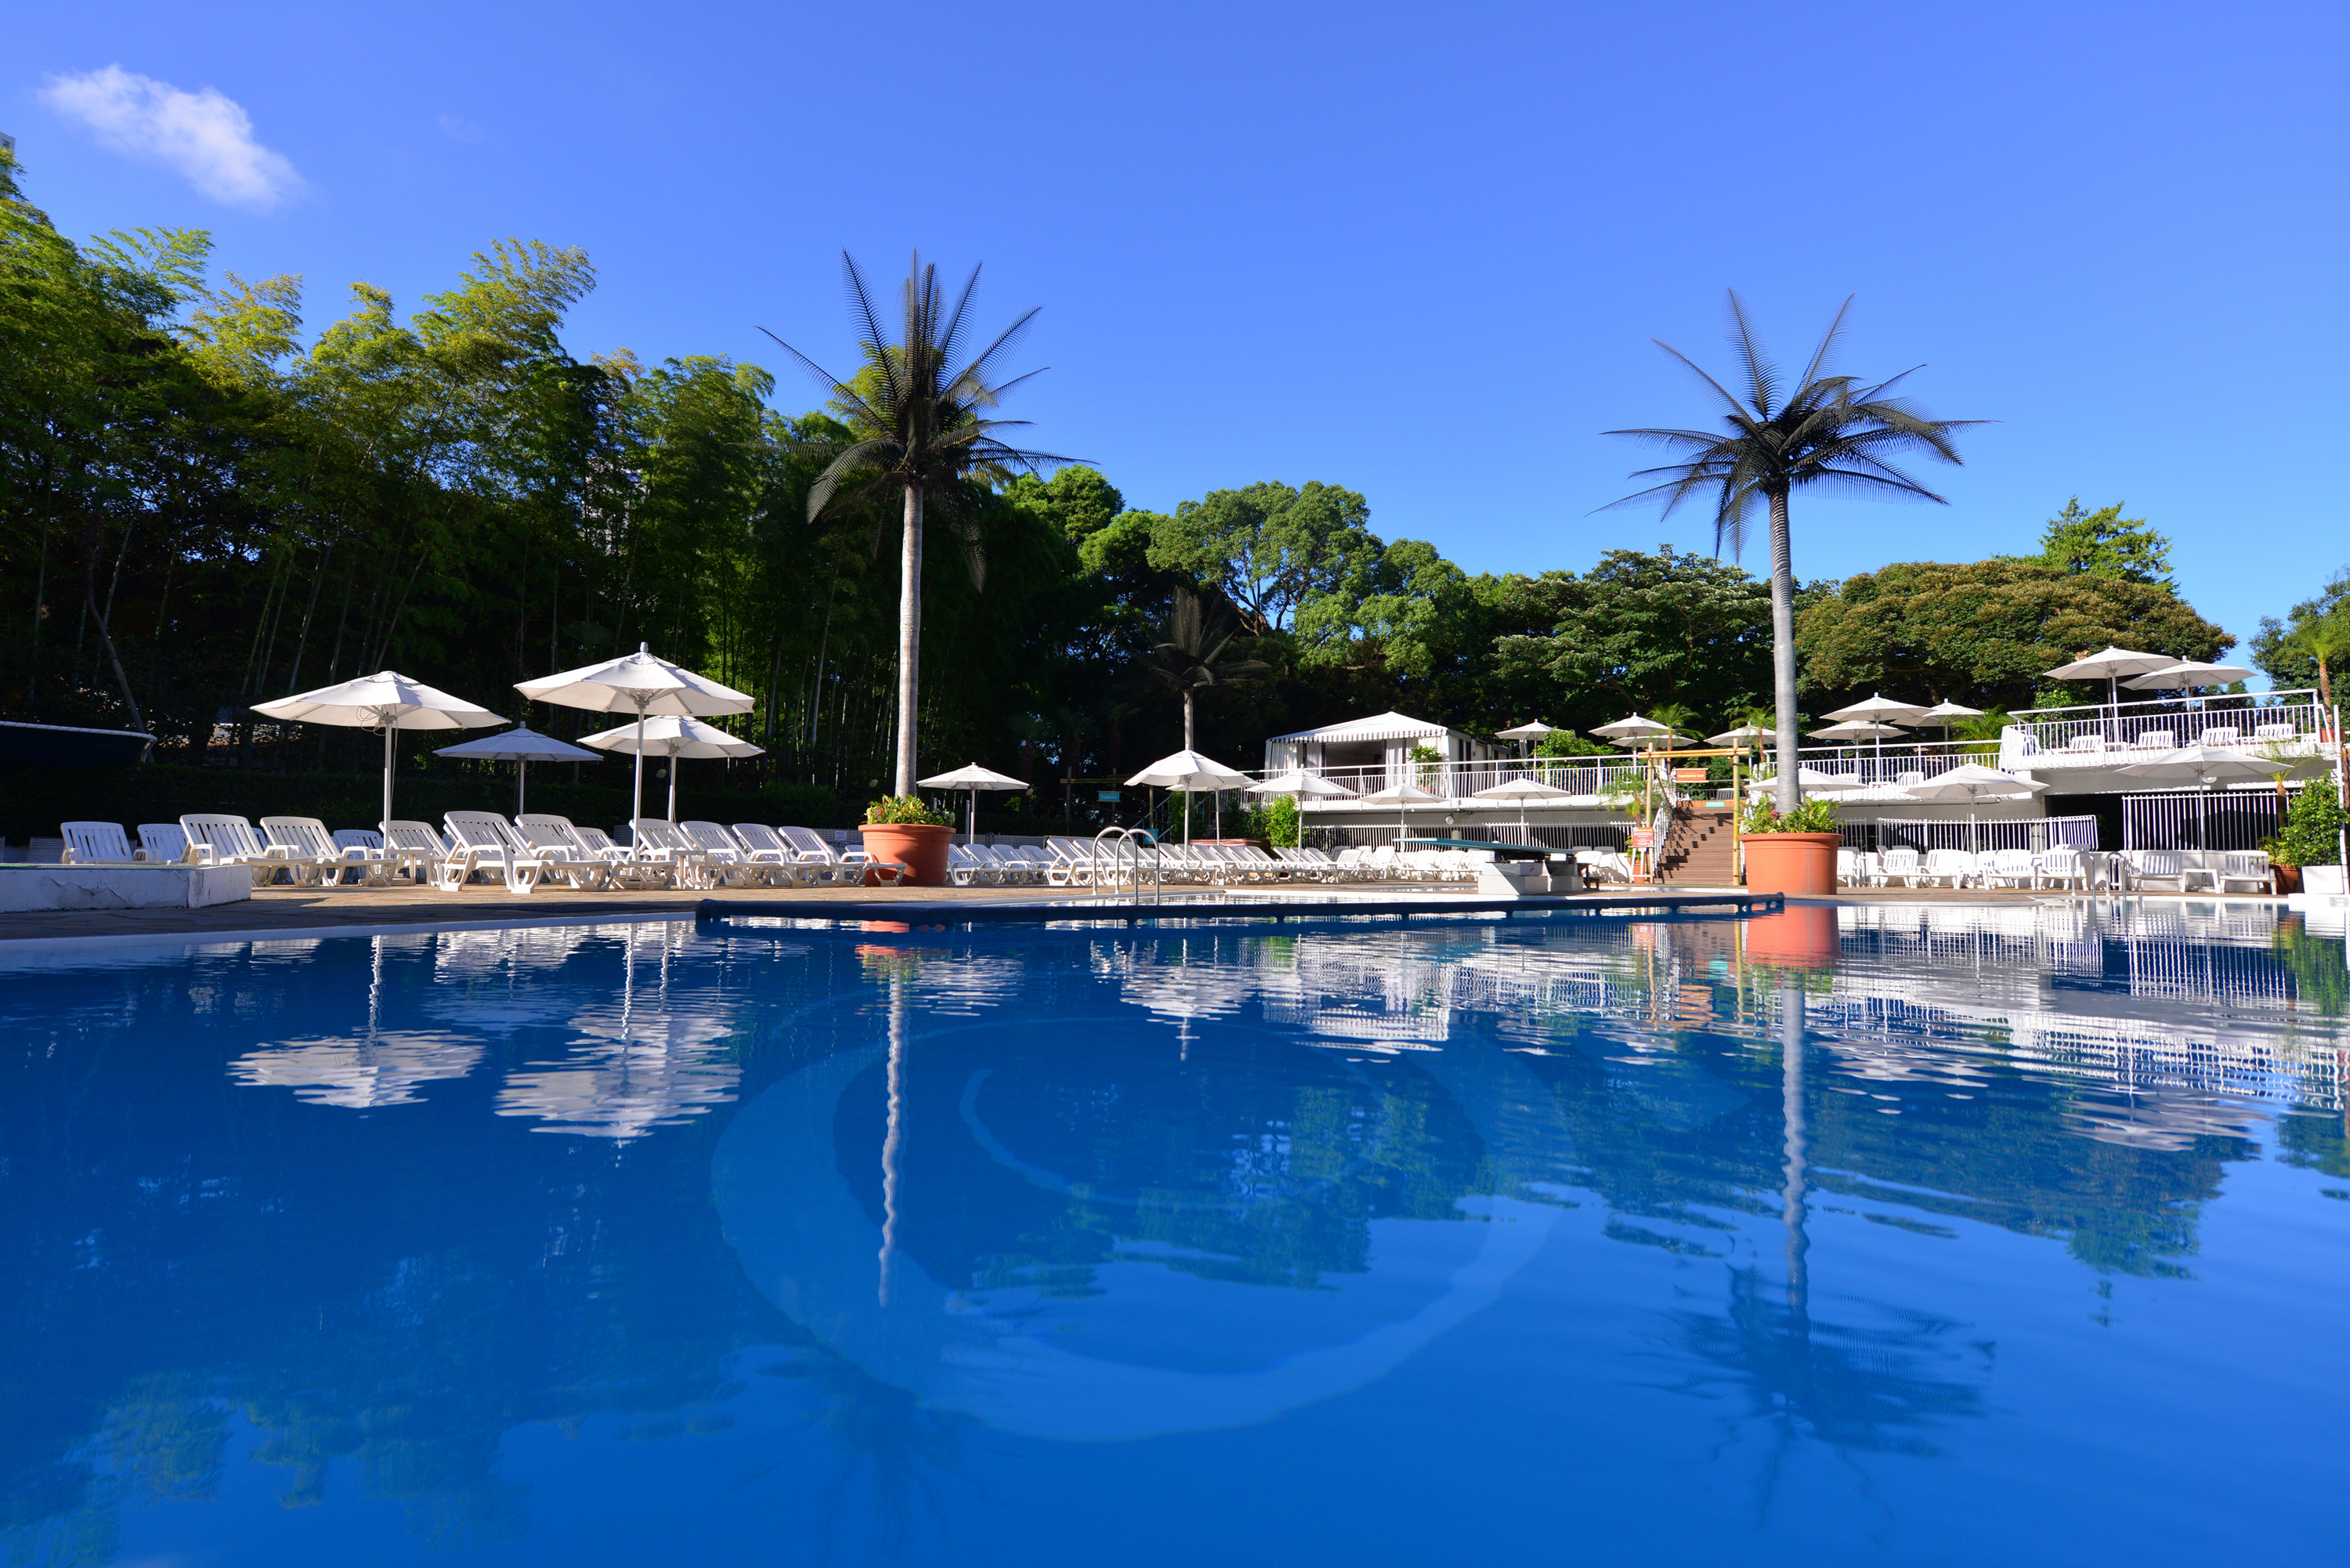 Garden pool at hotel new otani 2015 things to do in tokyo for Garden pool ystad